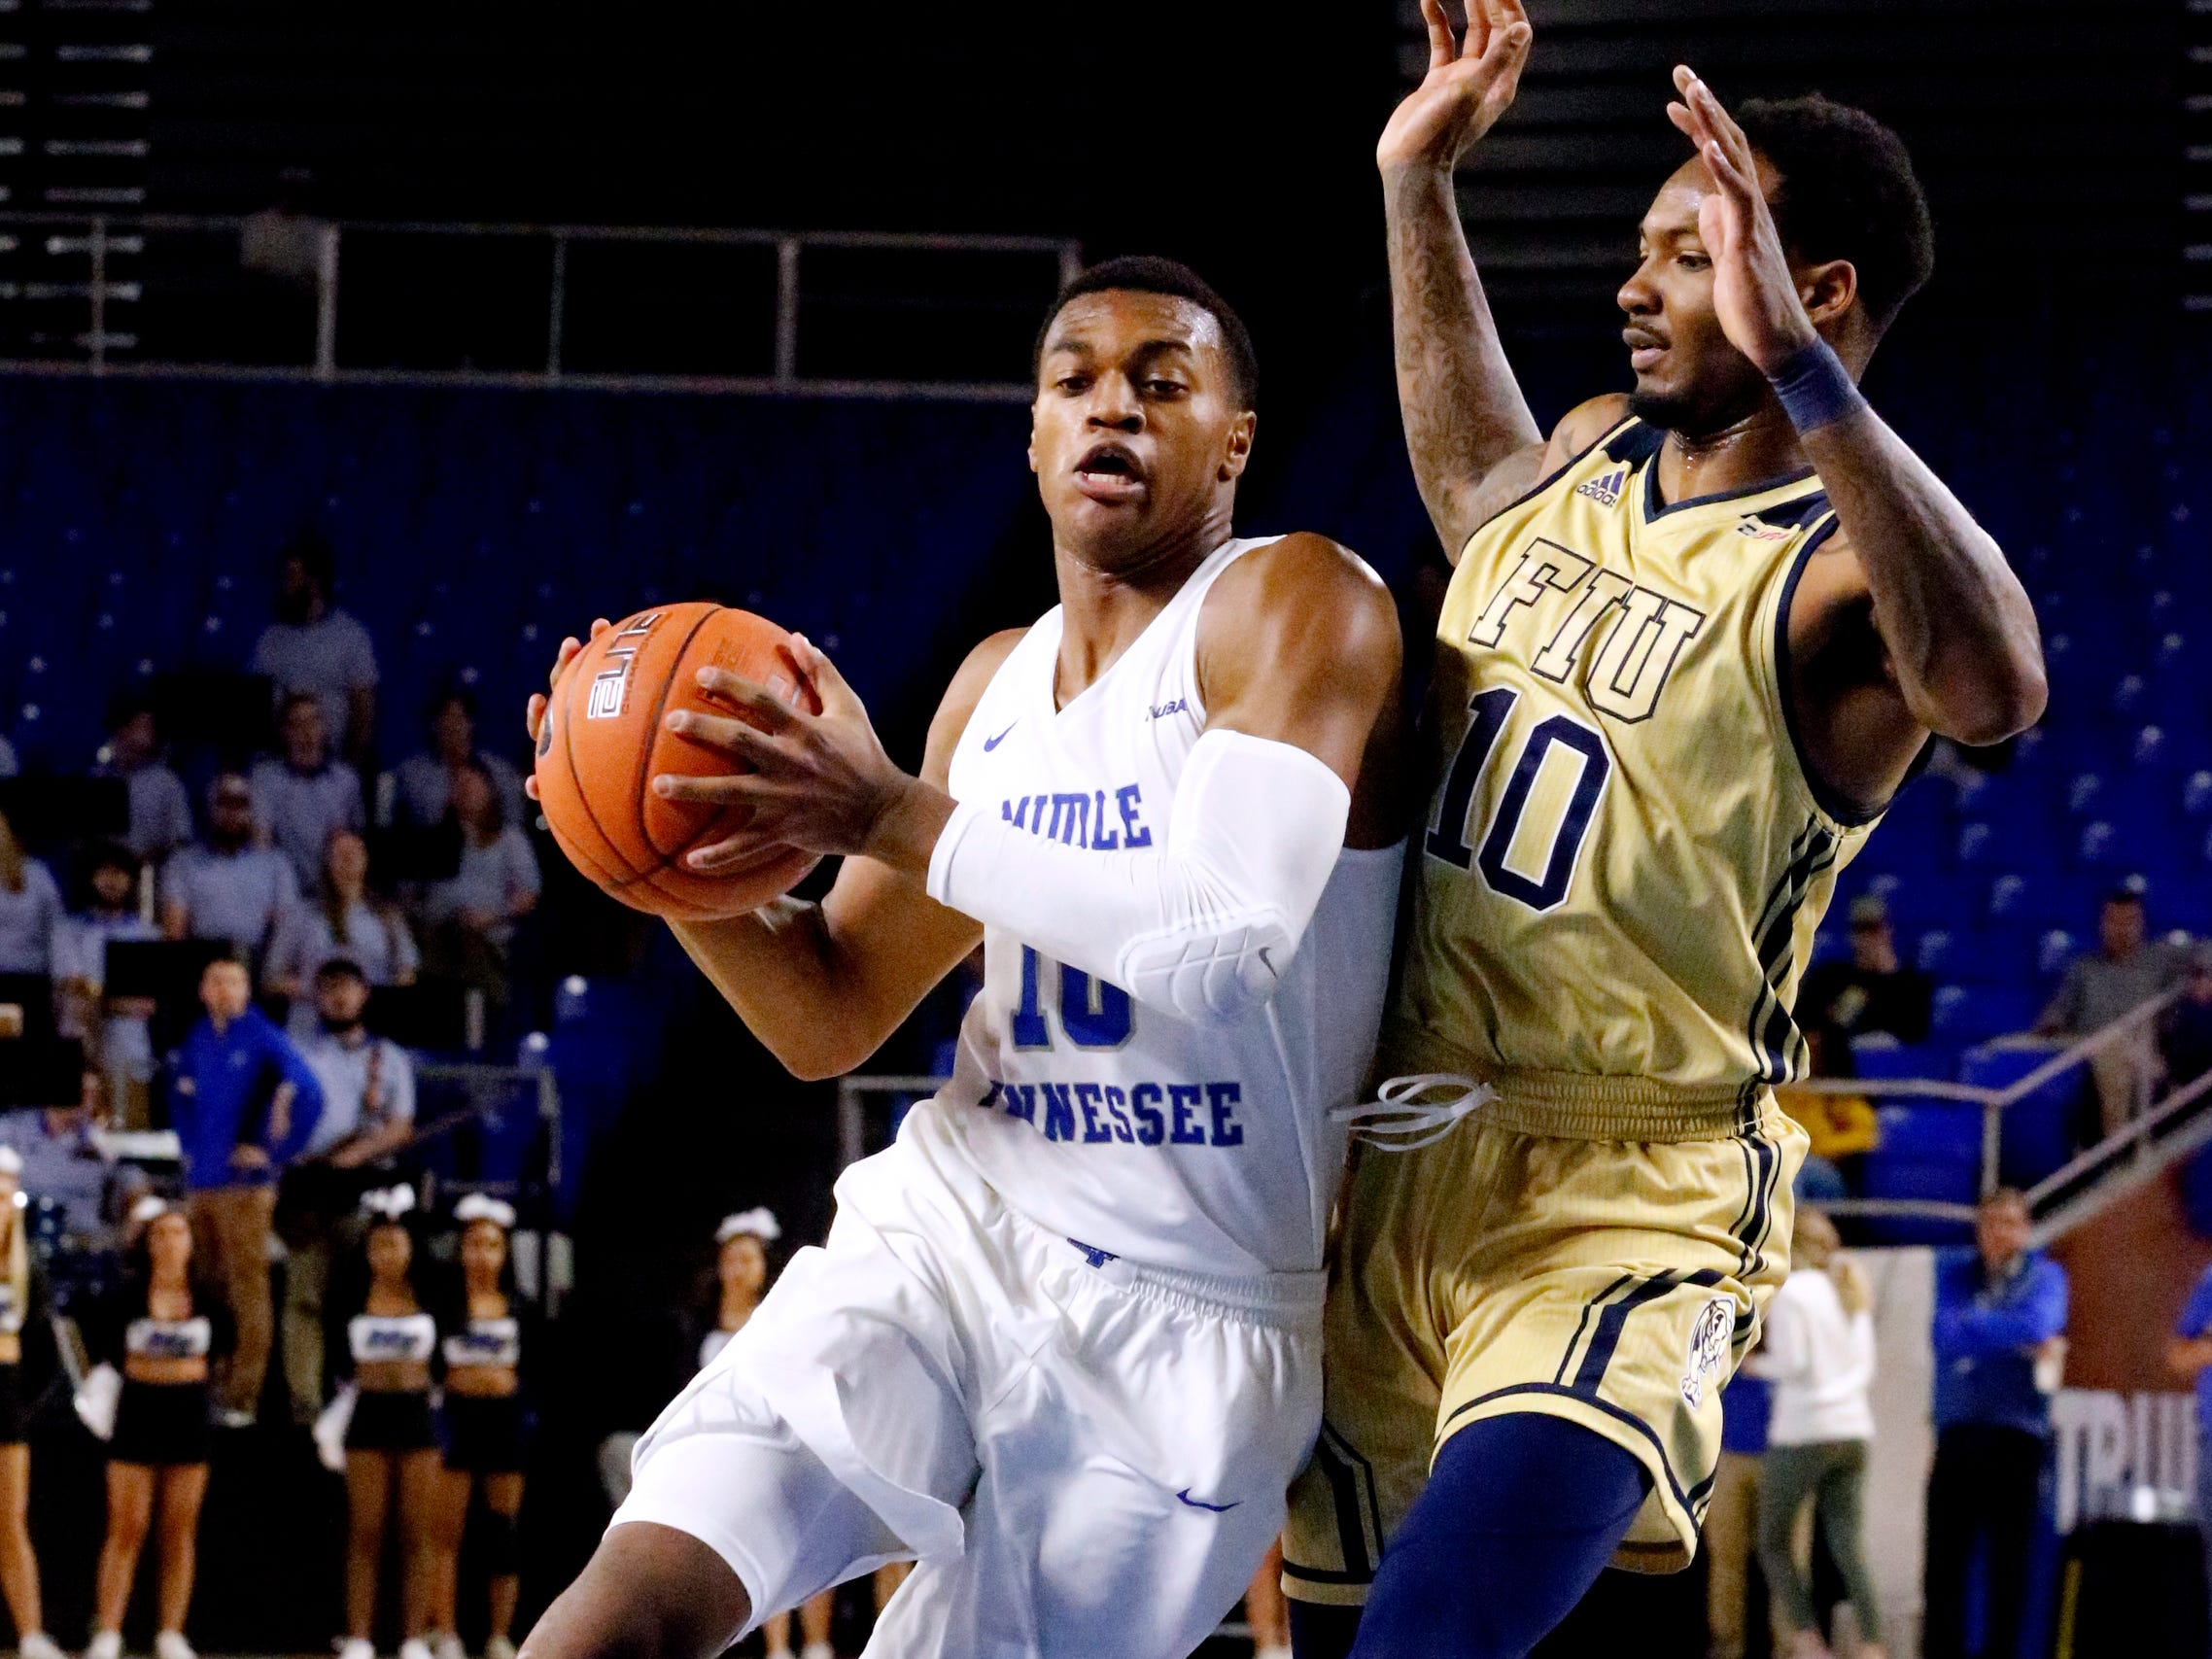 MTSU's guard Jayce Johnson (10) approaches the basket as FIU's forward Devon Andrews (10) defends him on Thursday Jan. 3, 2019, at MTSU.